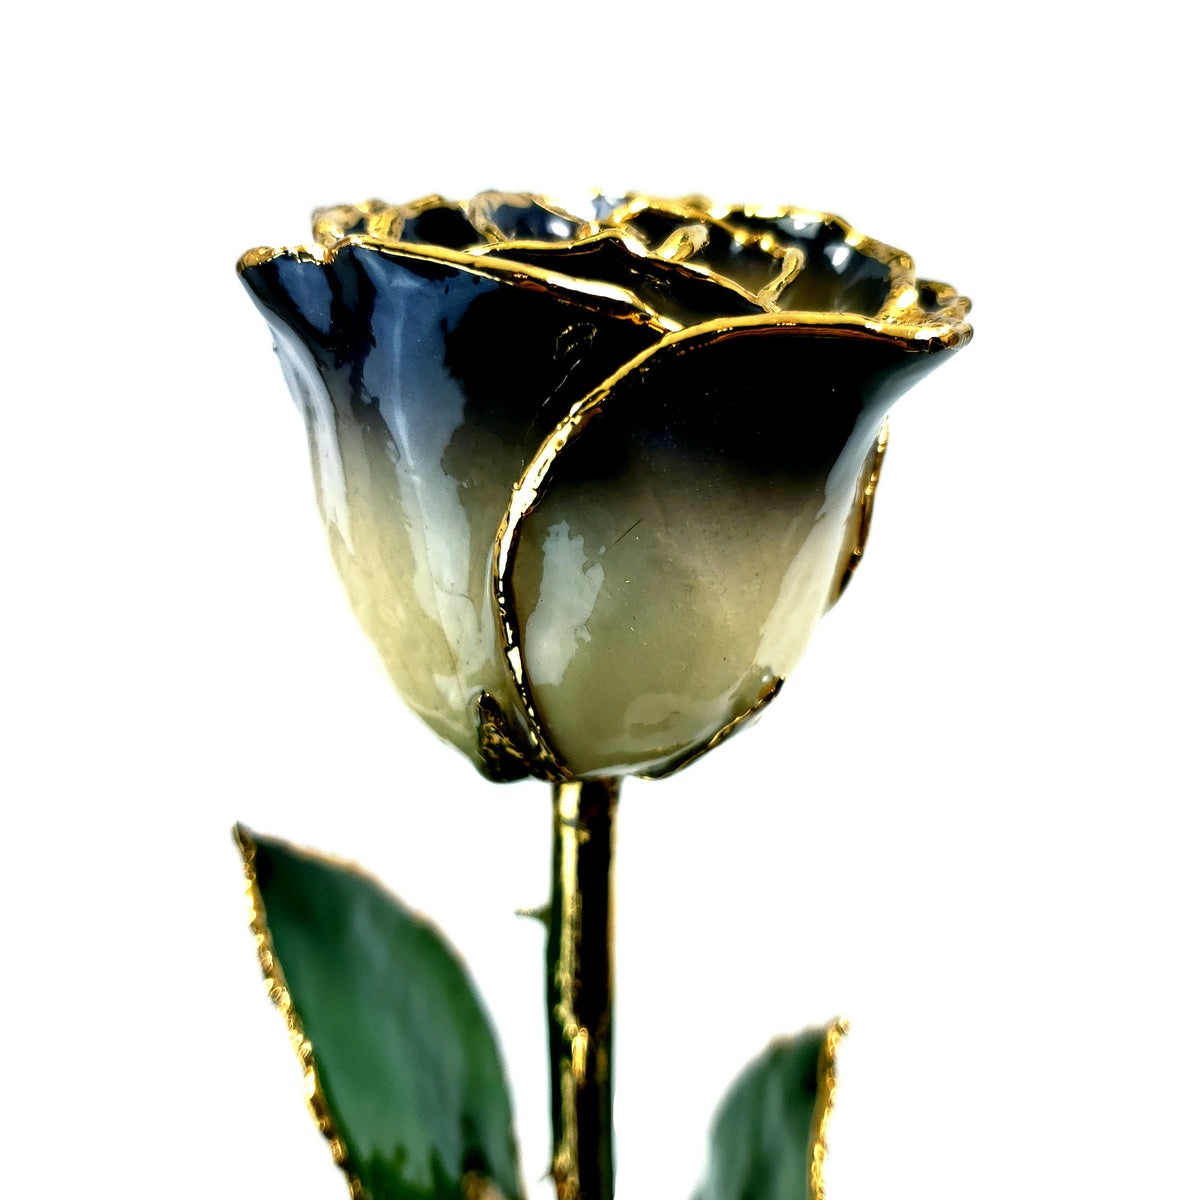 24K Gold Forever Rose - The Twilight Rose